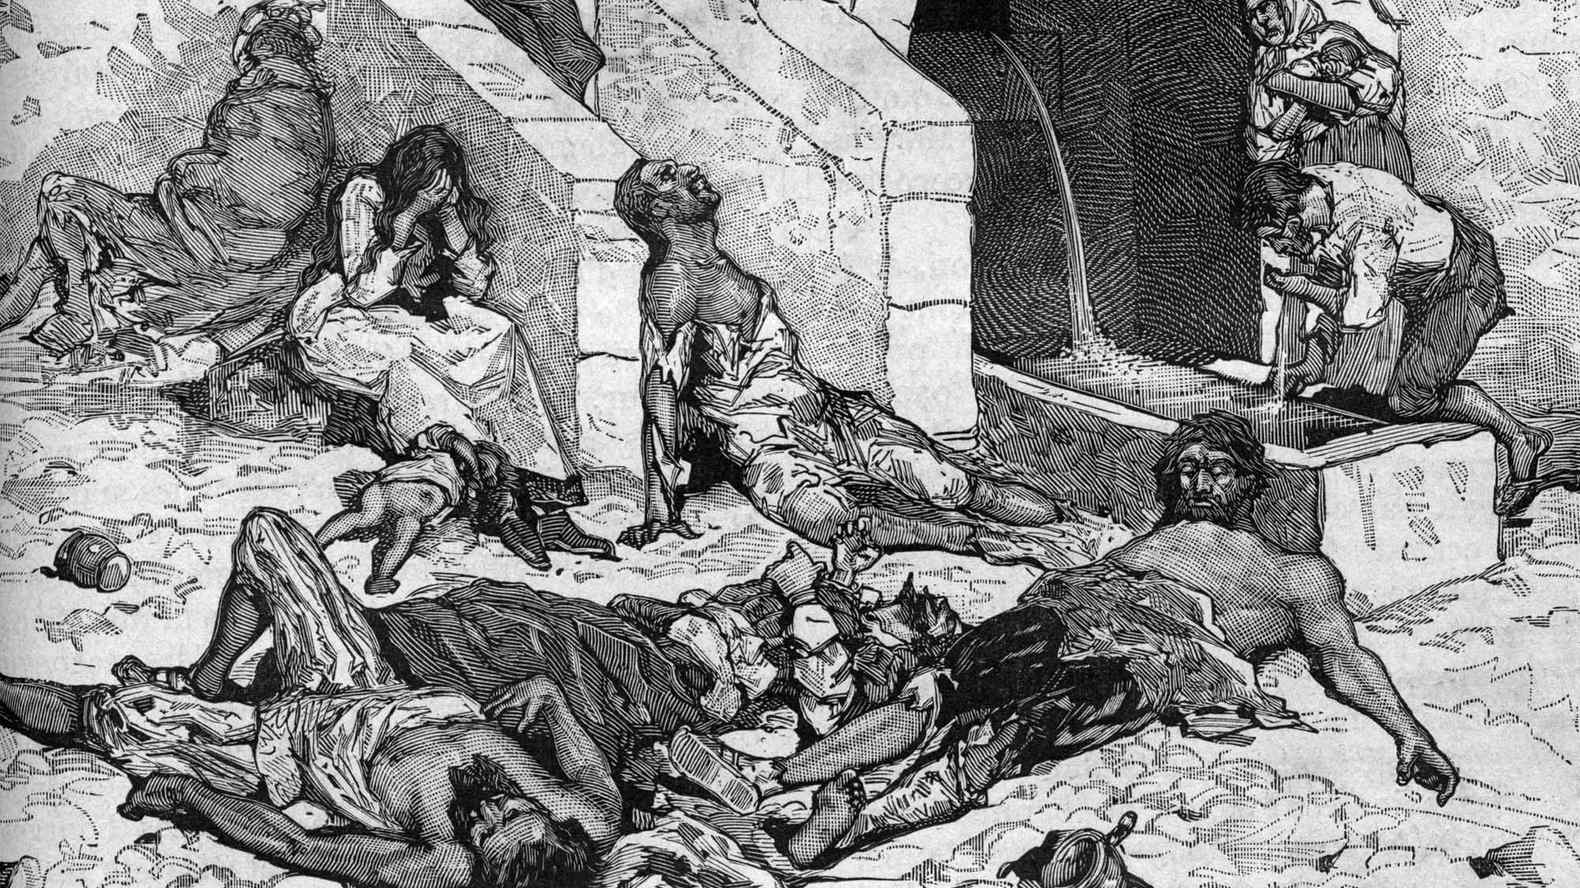 Most dangerous things in the world-Most dangerous disease: The black death